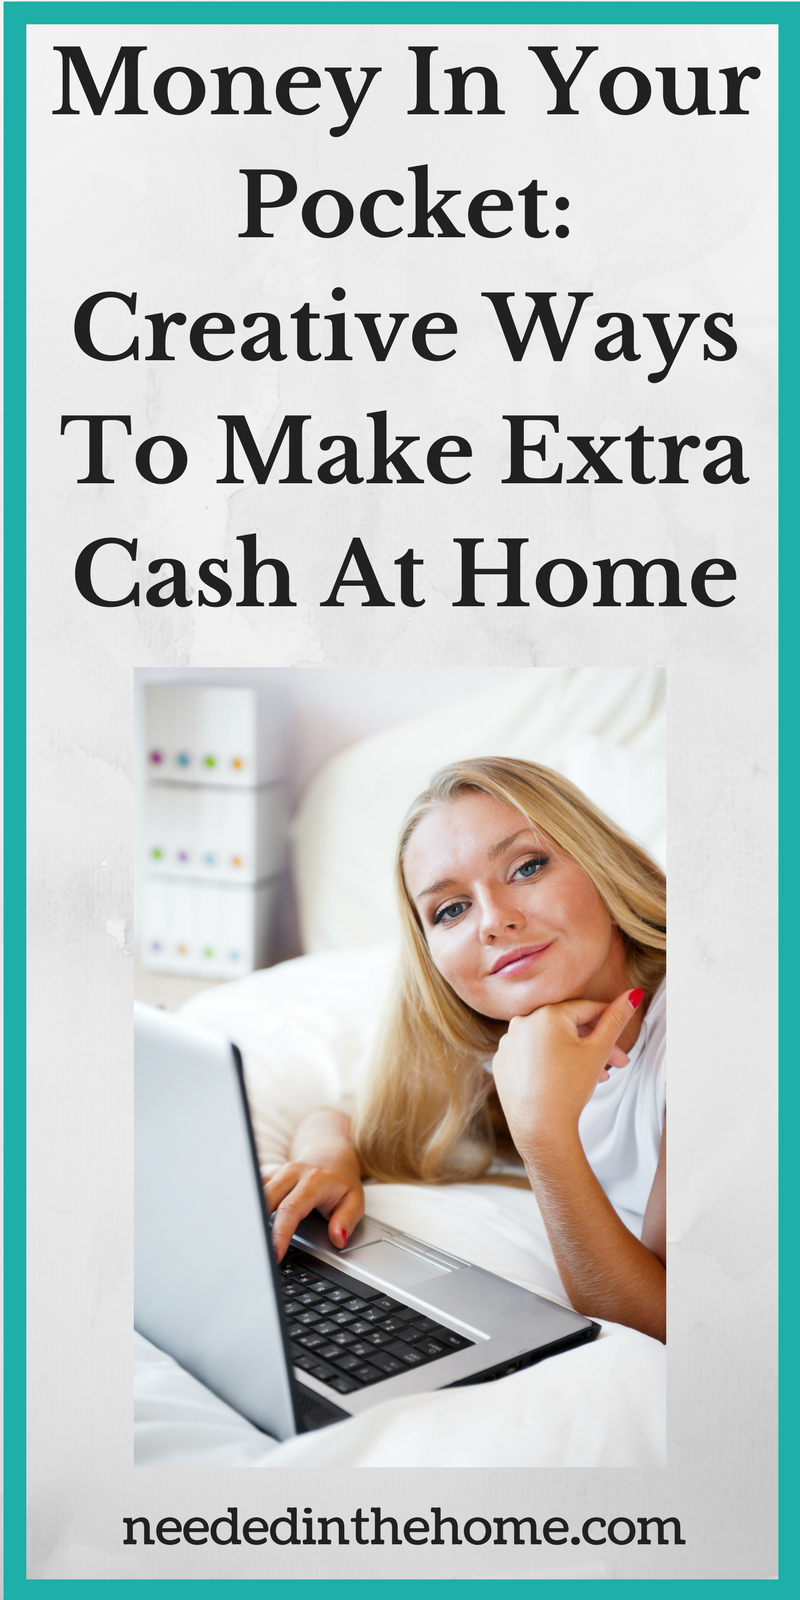 woman laptop working at home Money In Your Pocket: Creative Ways To Make Extra Cash At Home